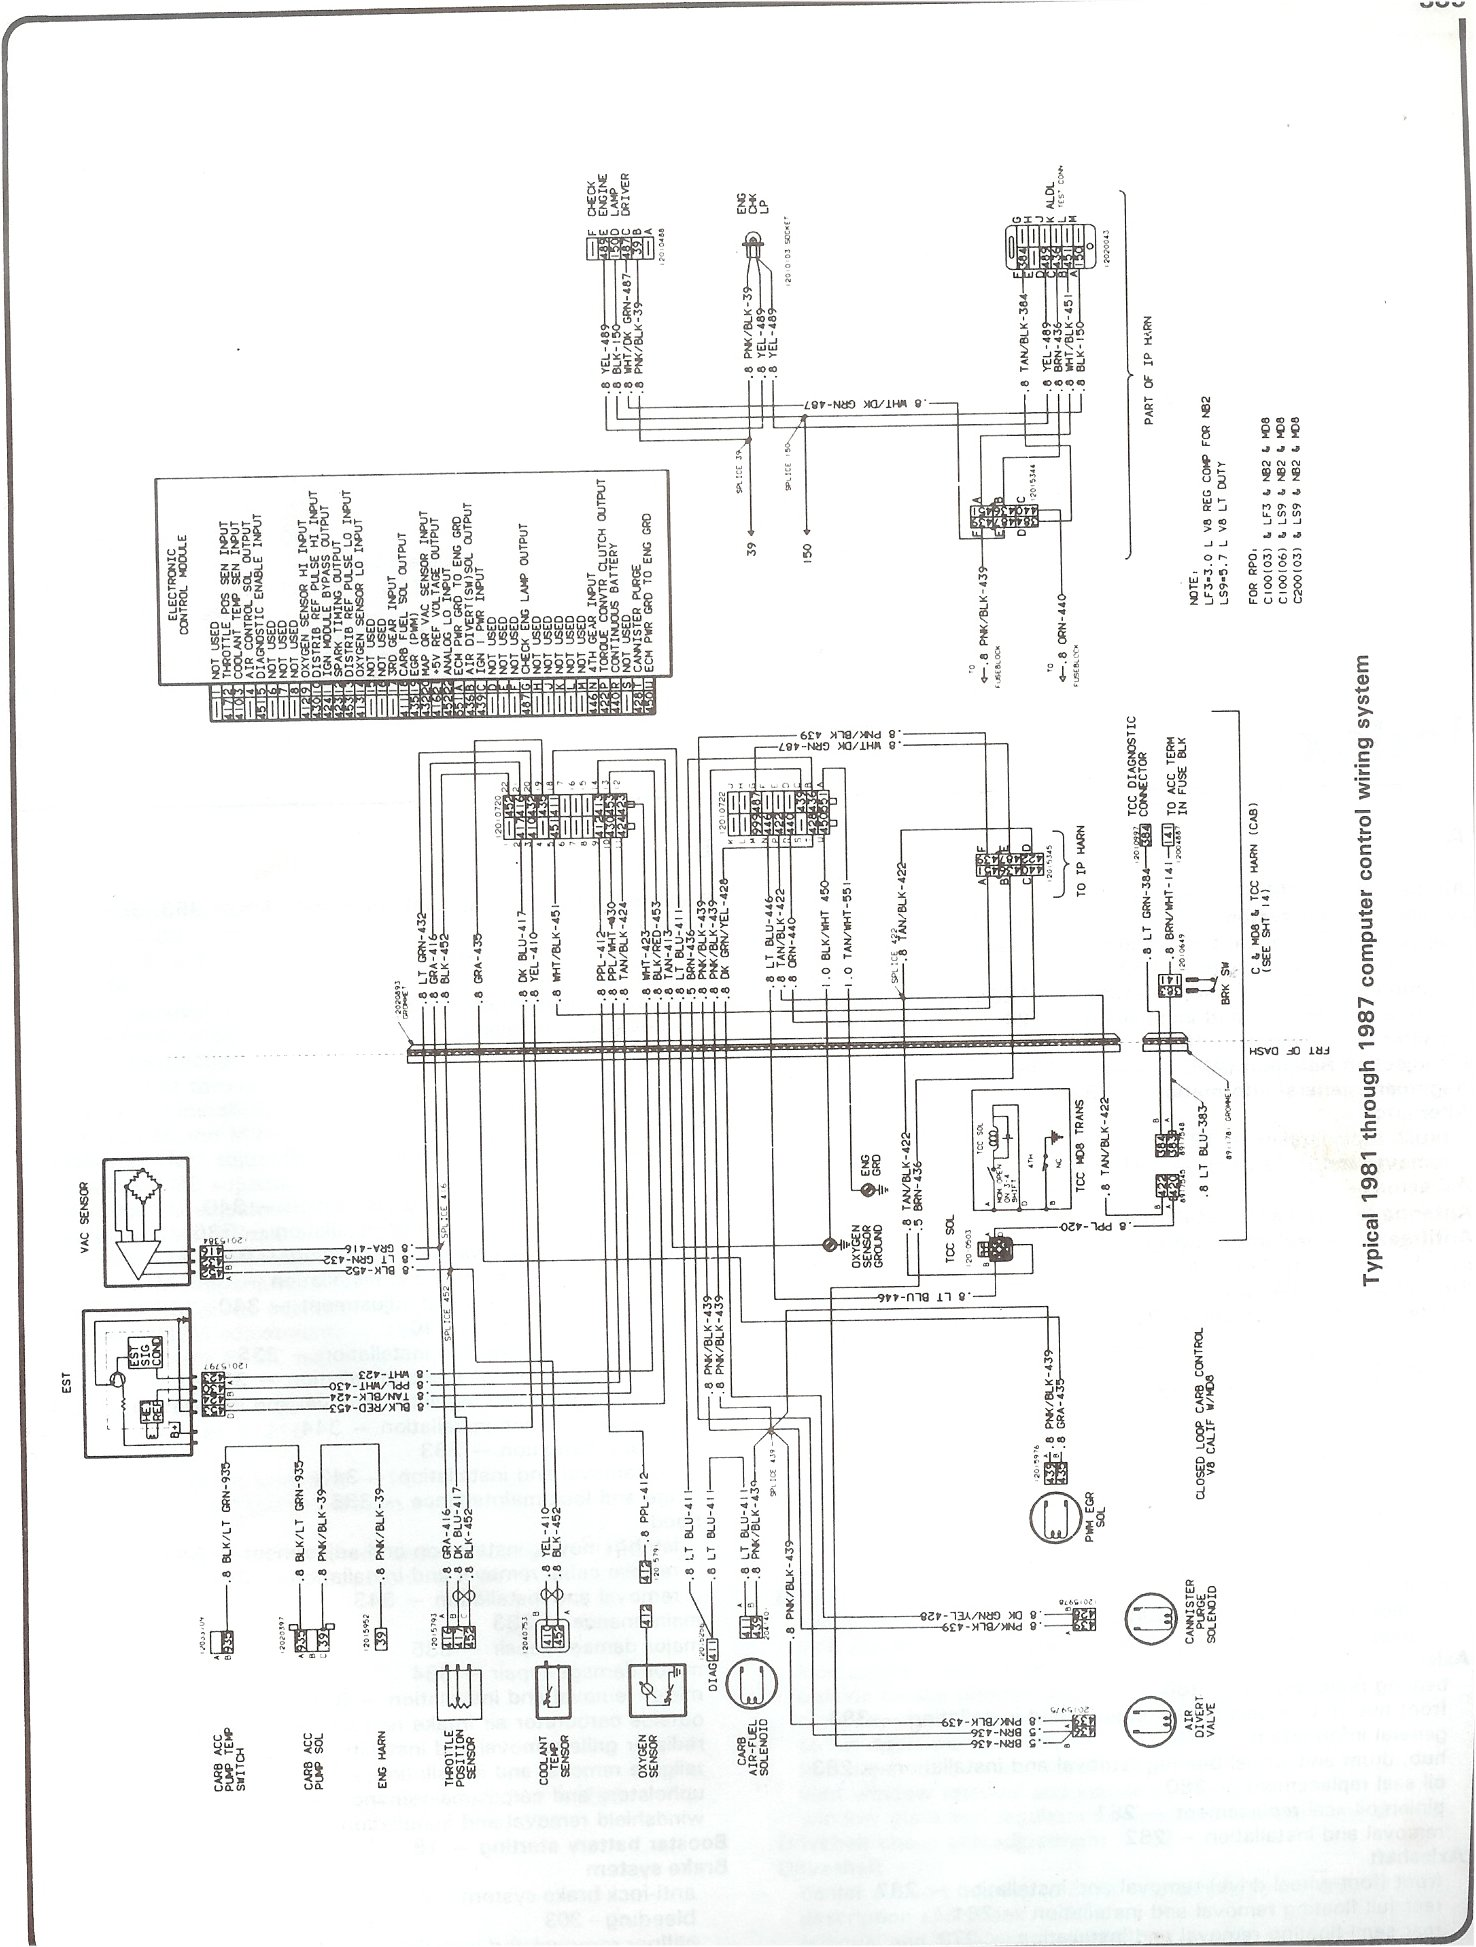 81 87_computer_control_wiring complete 73 87 wiring diagrams 1977 chevy truck wiring diagram at honlapkeszites.co